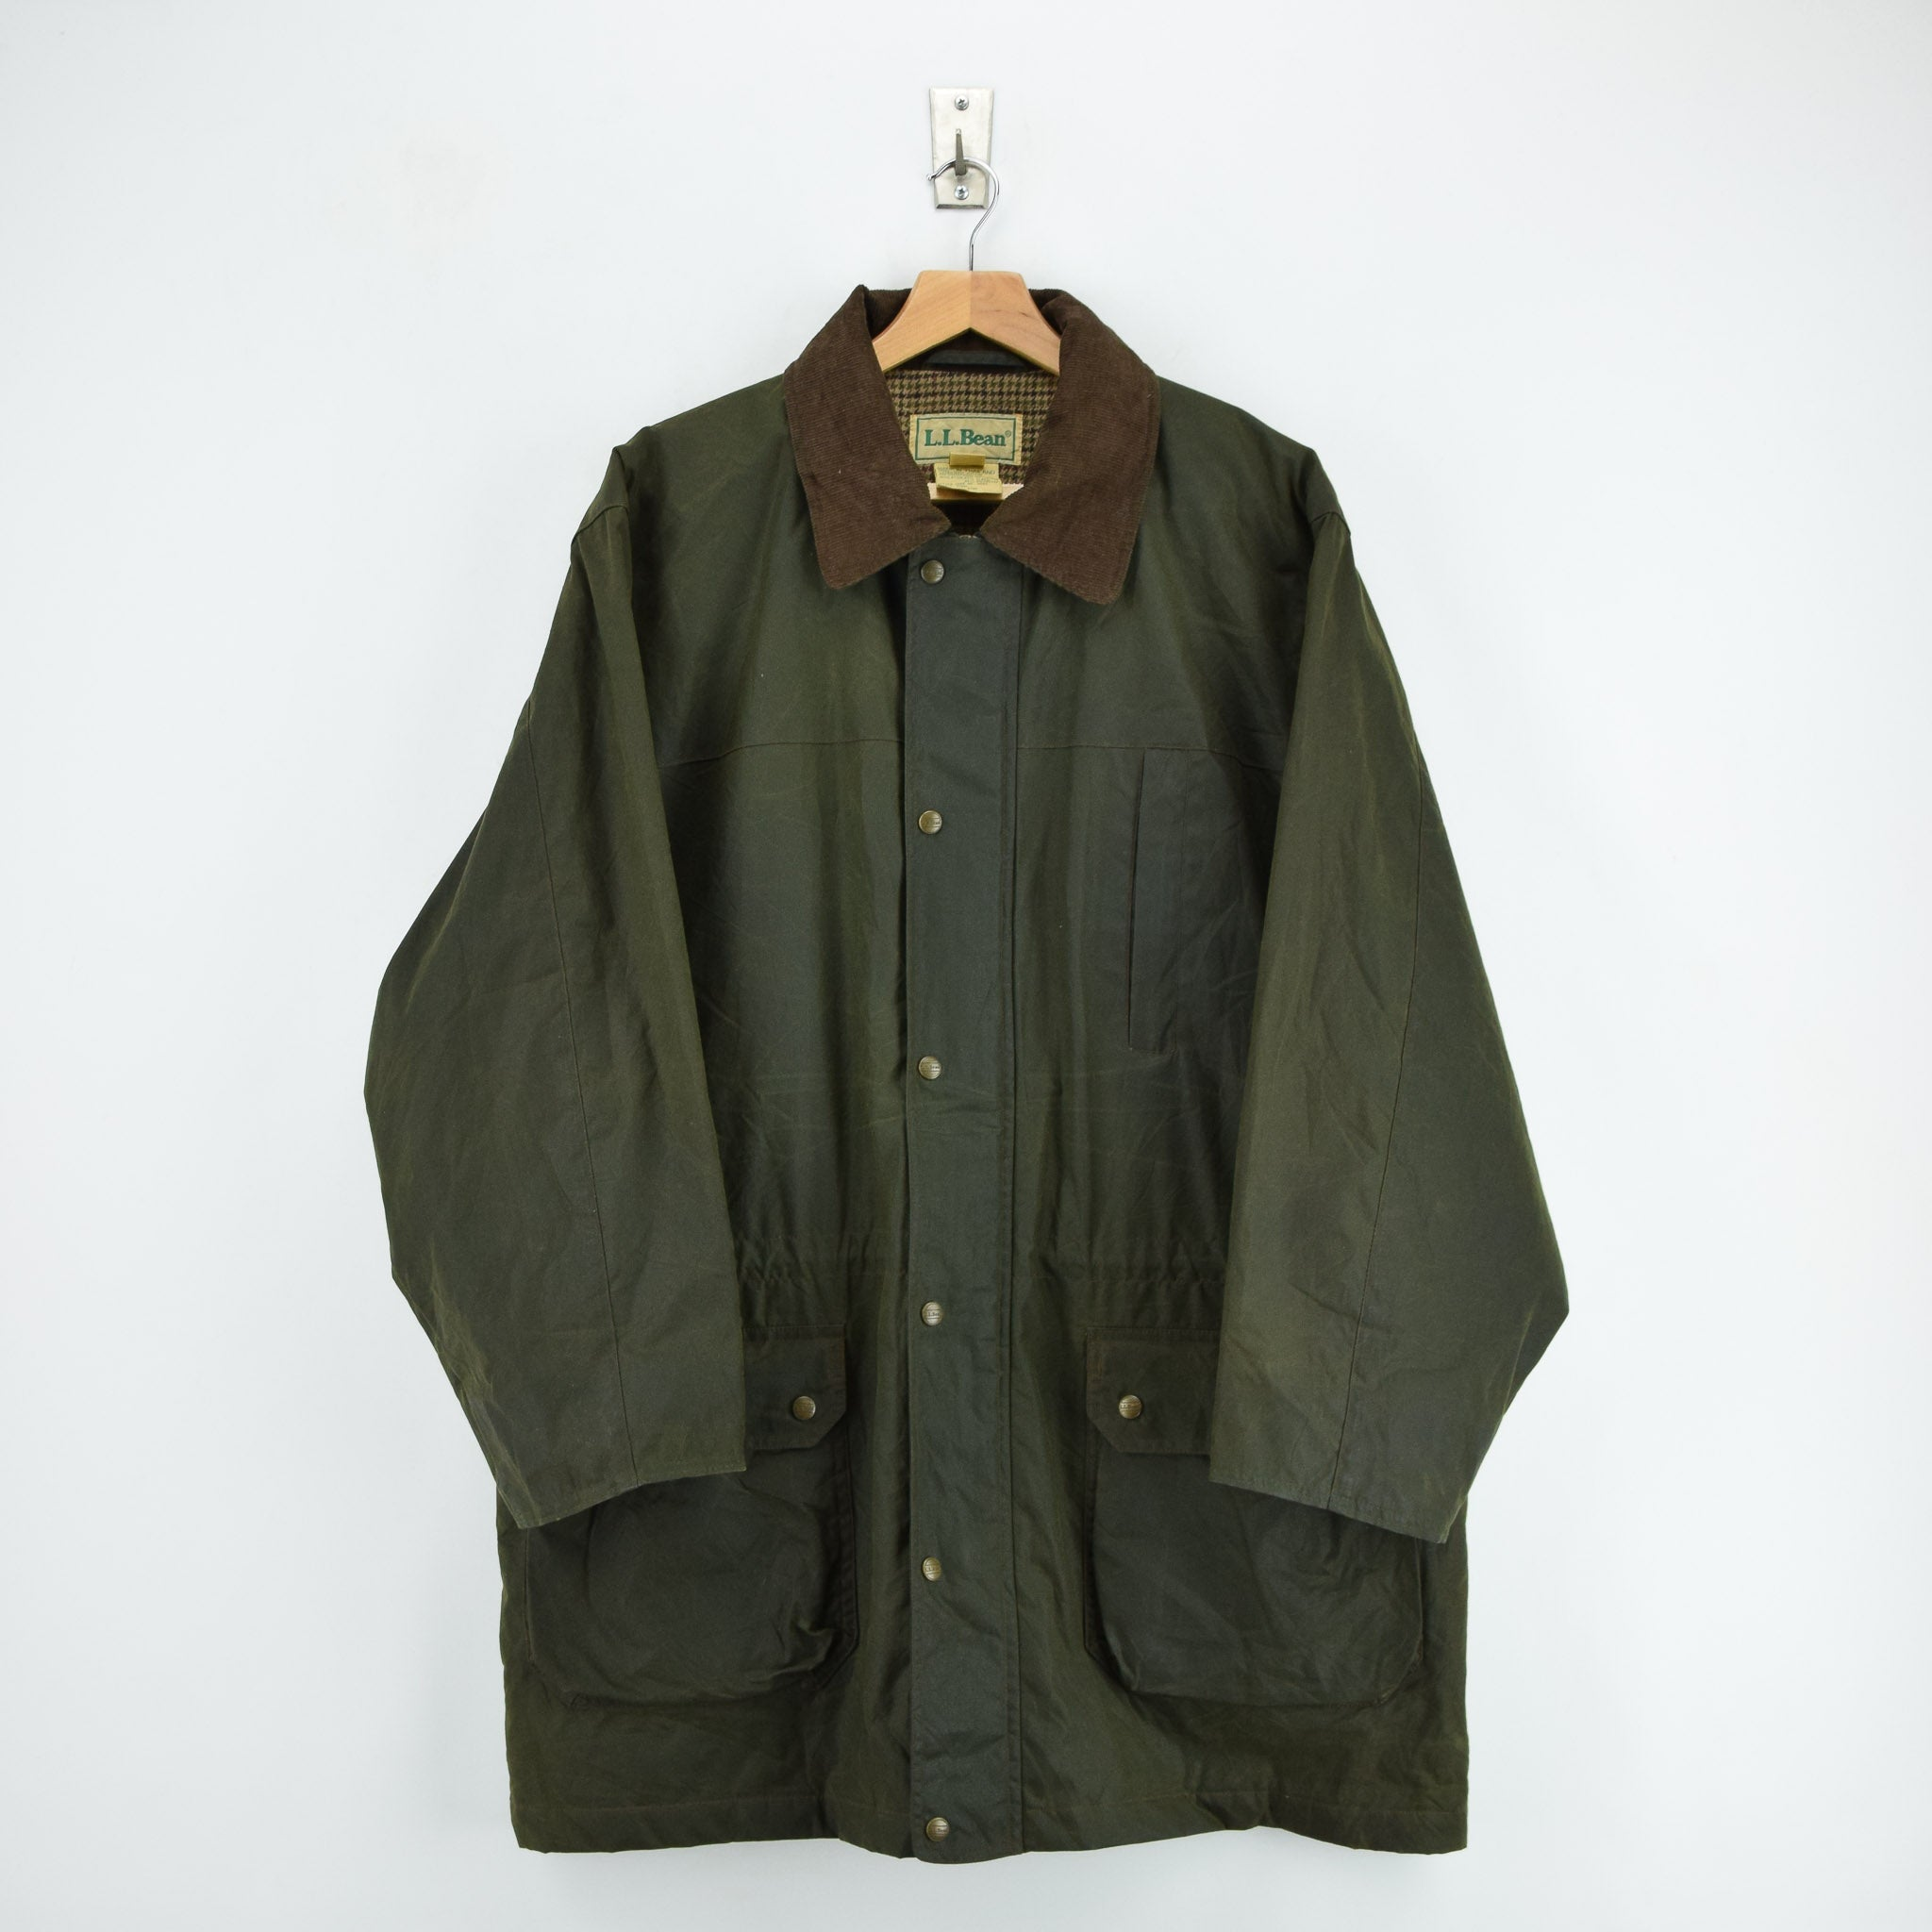 Vintage LL Bean Green Wax Cotton Hunting Shooting Jacket Thinsulate Lined L front